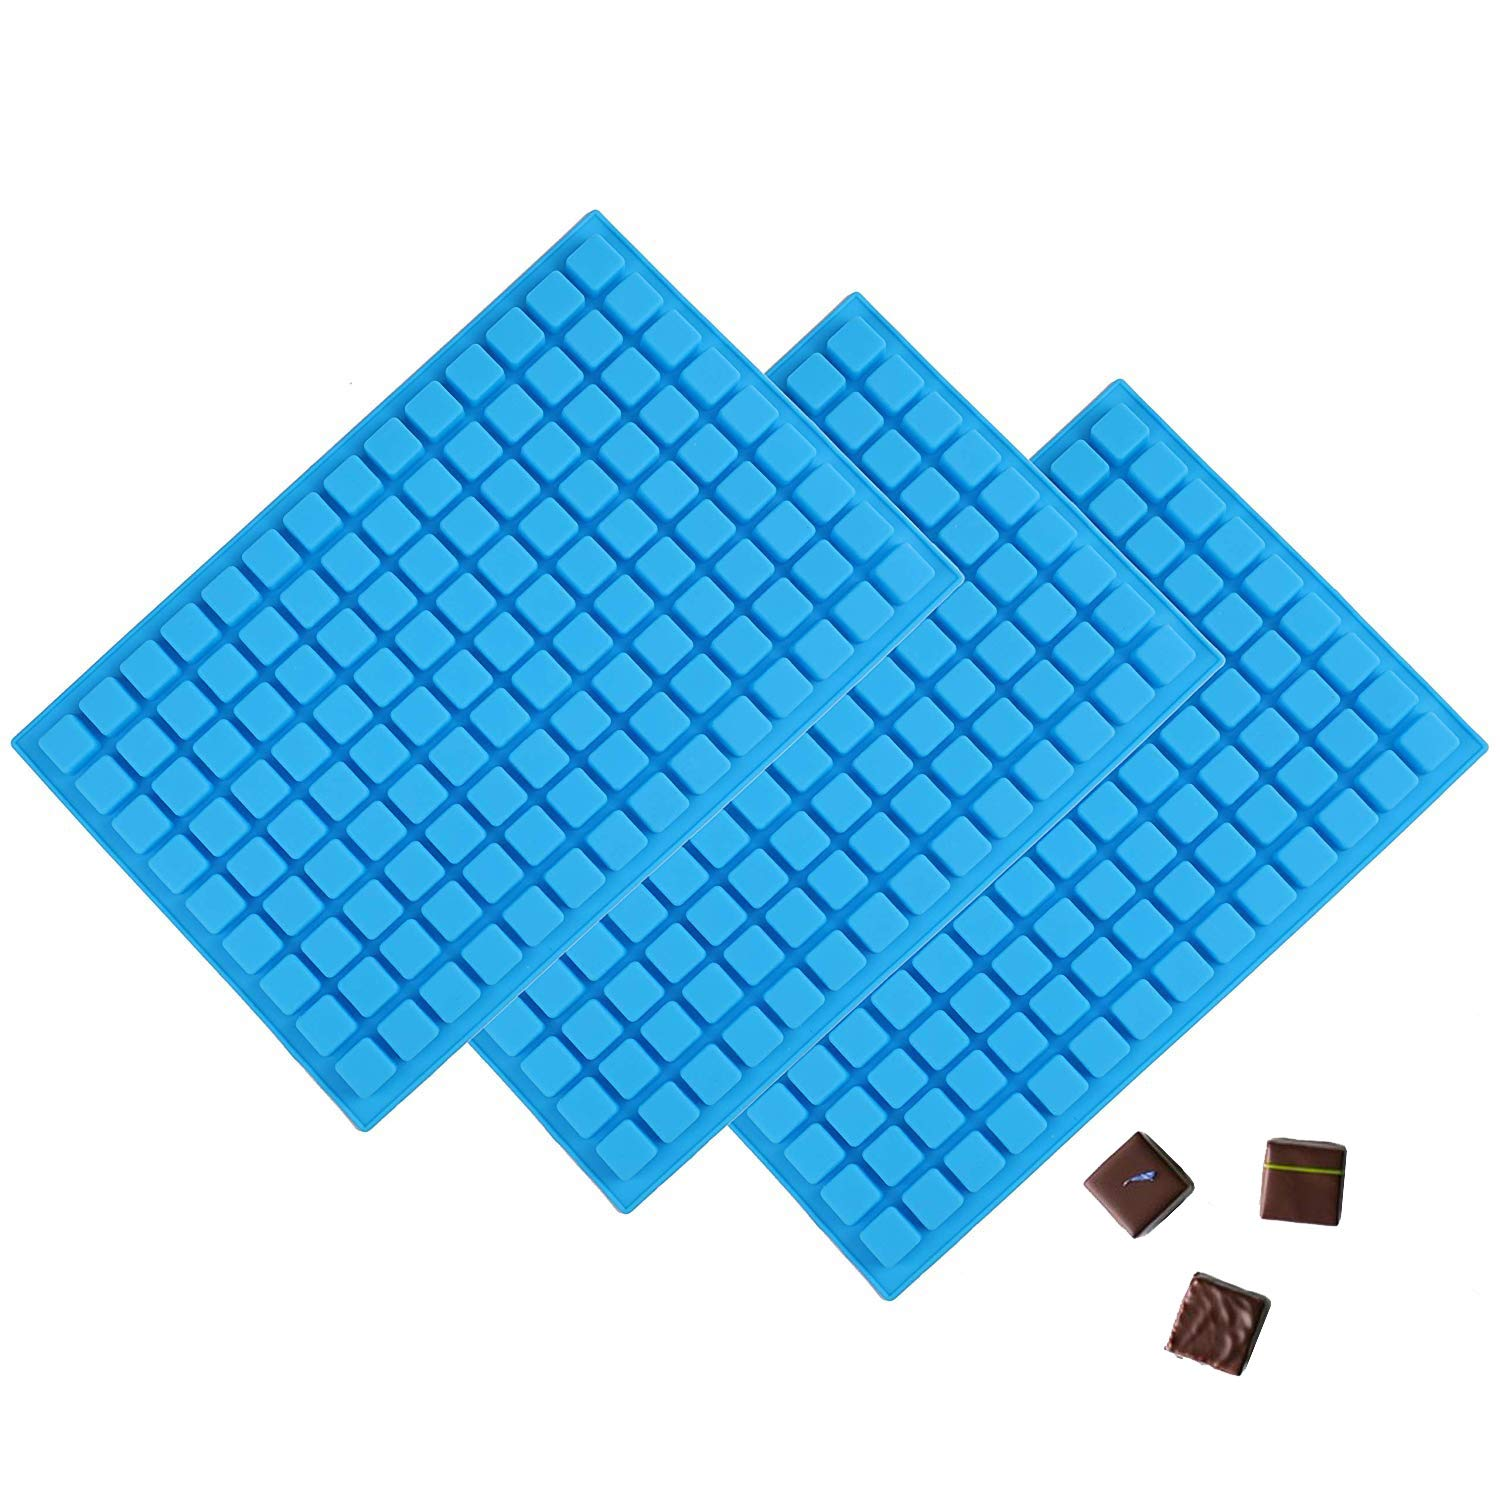 Fasmov 3 Pieces 126-Cavity Square Silicone Mold Mini Candy Molds Ice Cube Tray for Chocolate Gummy Ice Cube Jelly Truffles Pralines Caramels Ganache